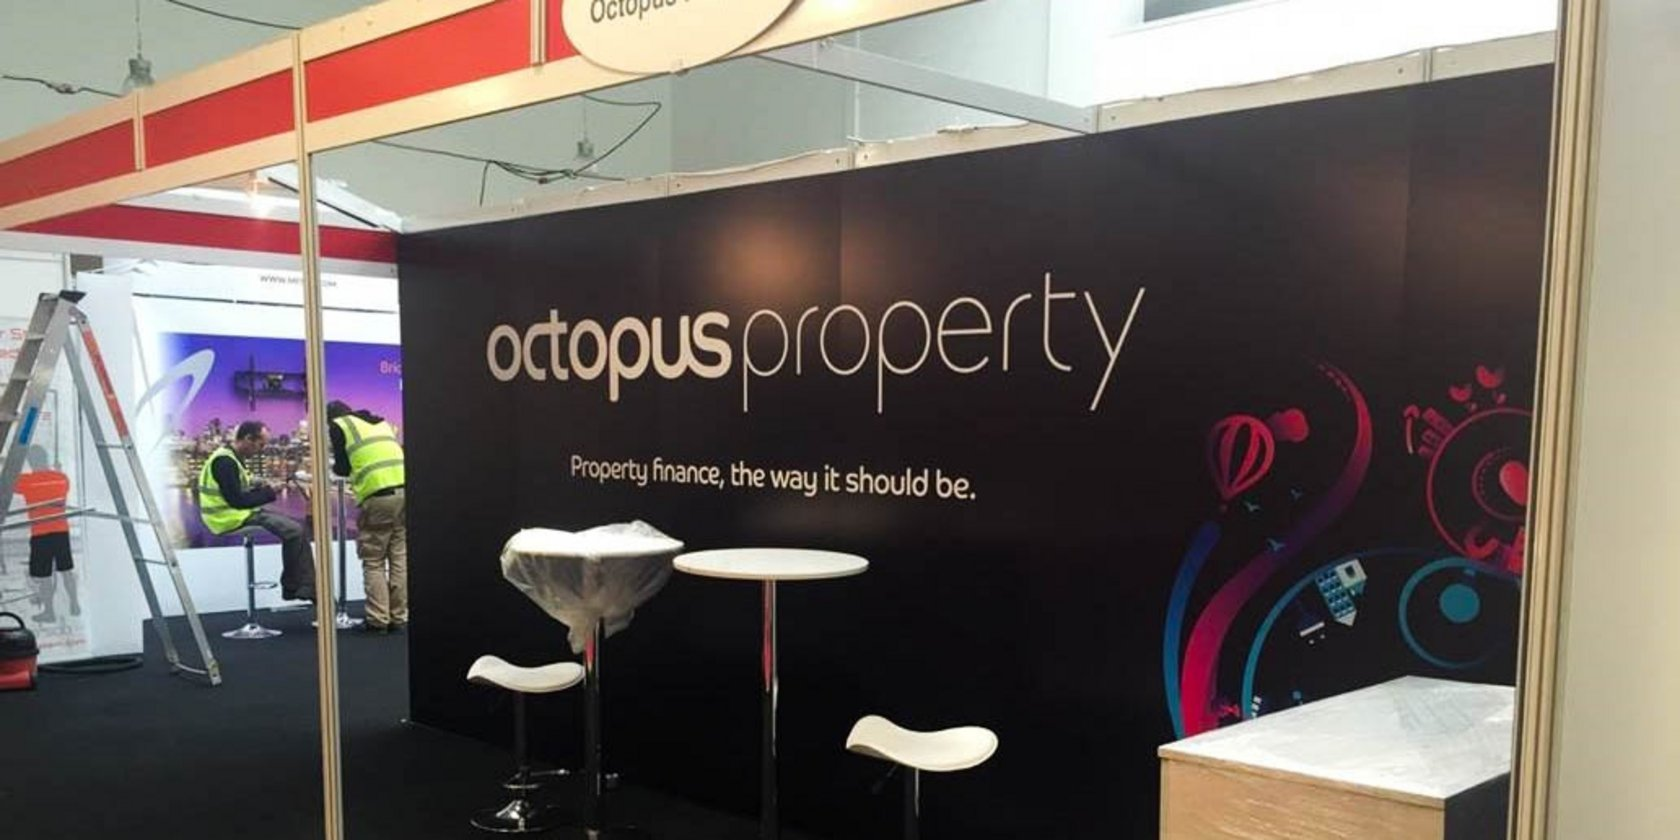 Exhibition Wall Panels for Octopus Property